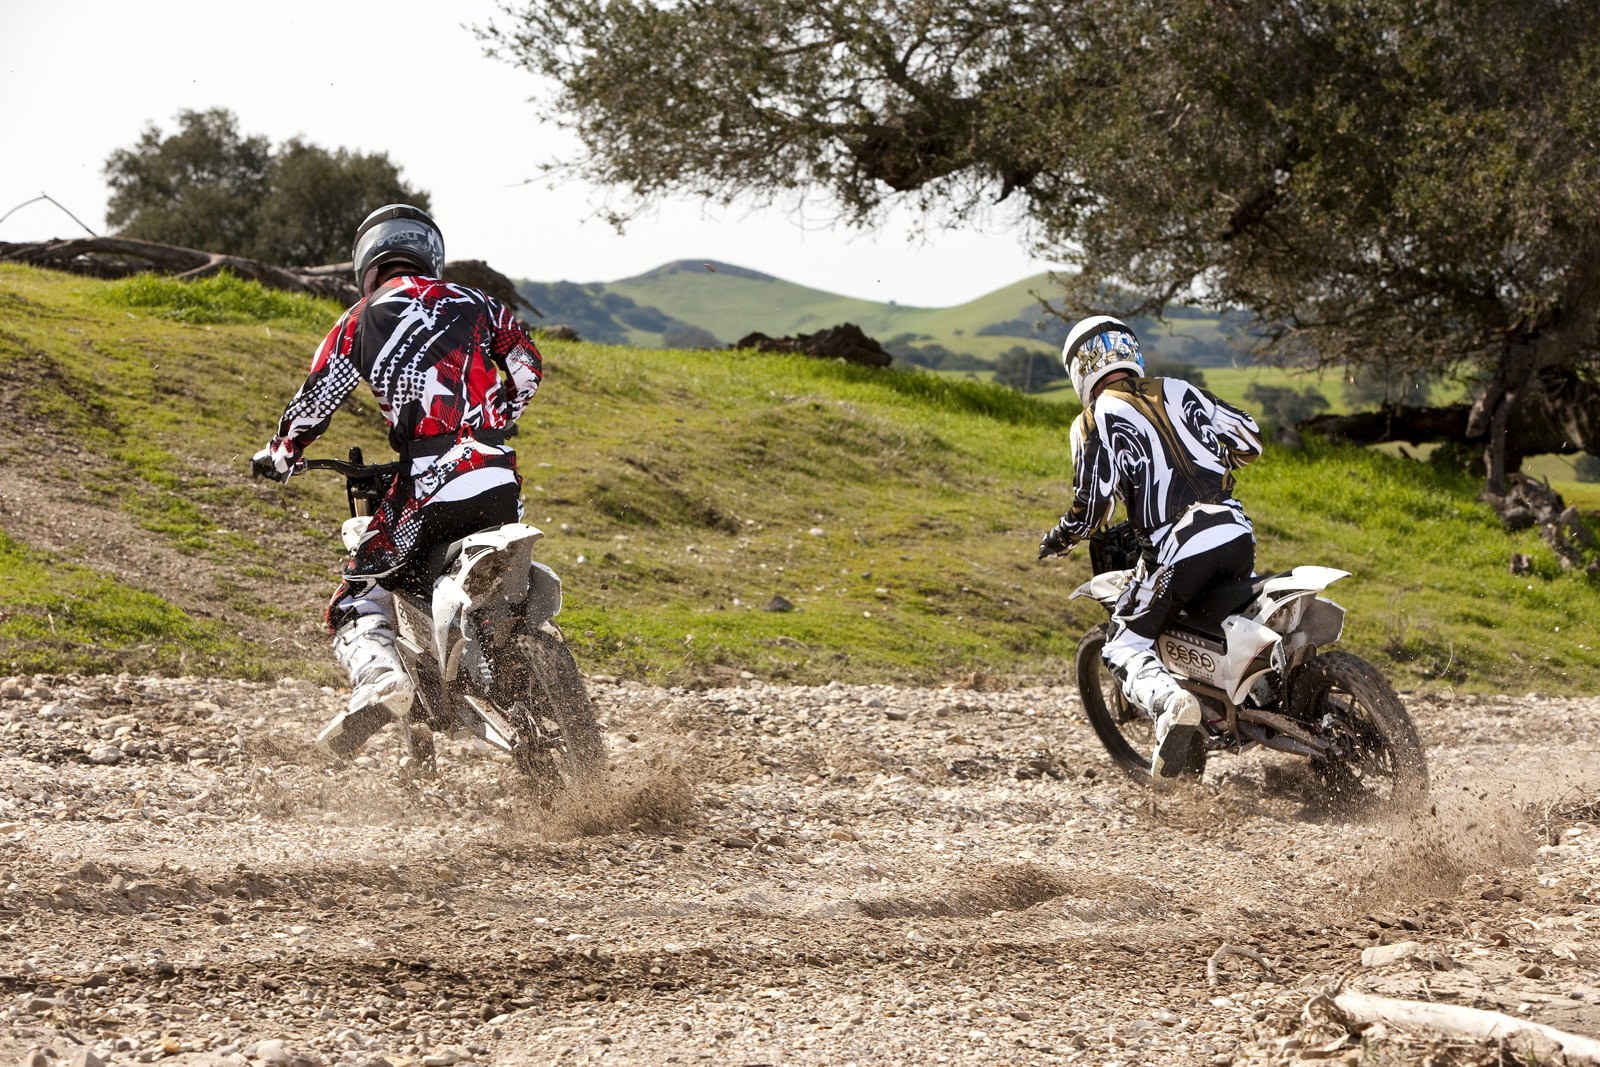 2010 Zero X Electric Motorcycle: Zaca Station - Playing in Rocks